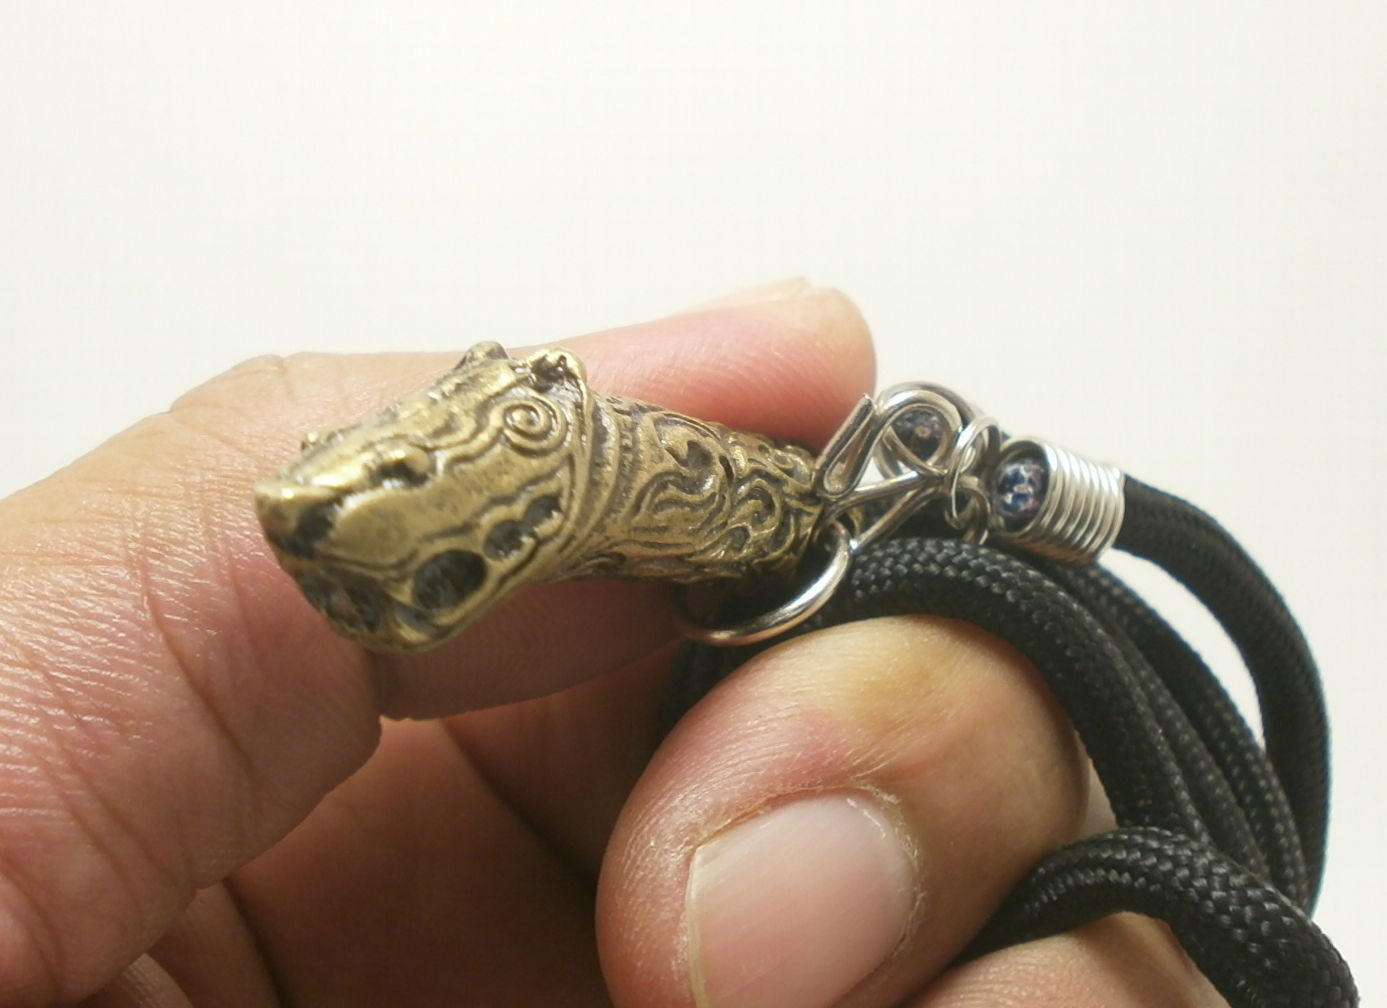 MAGIC TIGER LINGHAM THAI REAL RARE AMULET LIFE PROTECTION BRASS PENDANT NECKLACE